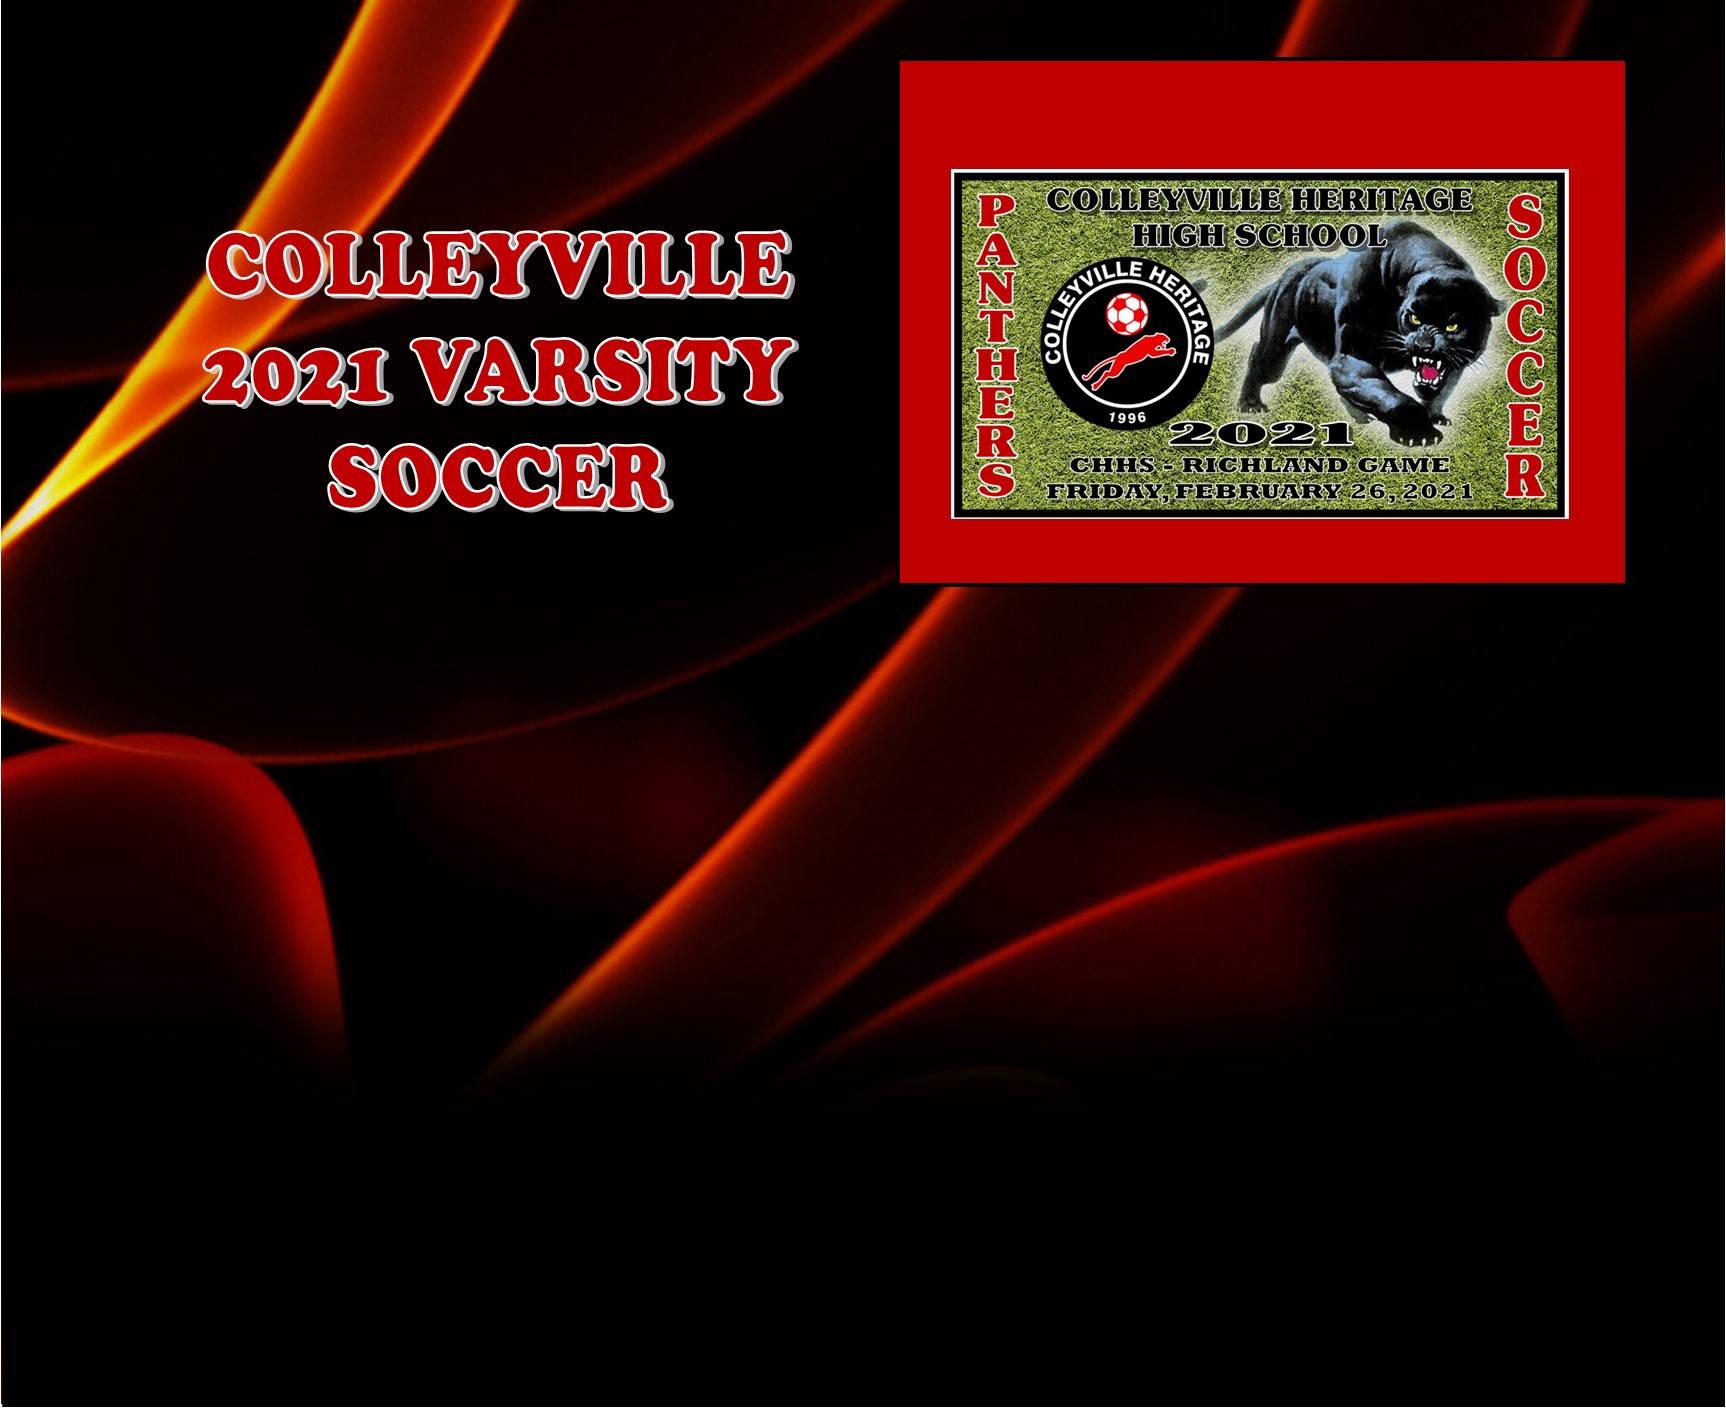 GCISD Soccer: Colleyville Panthers Shutdown Richland Royals 4-0